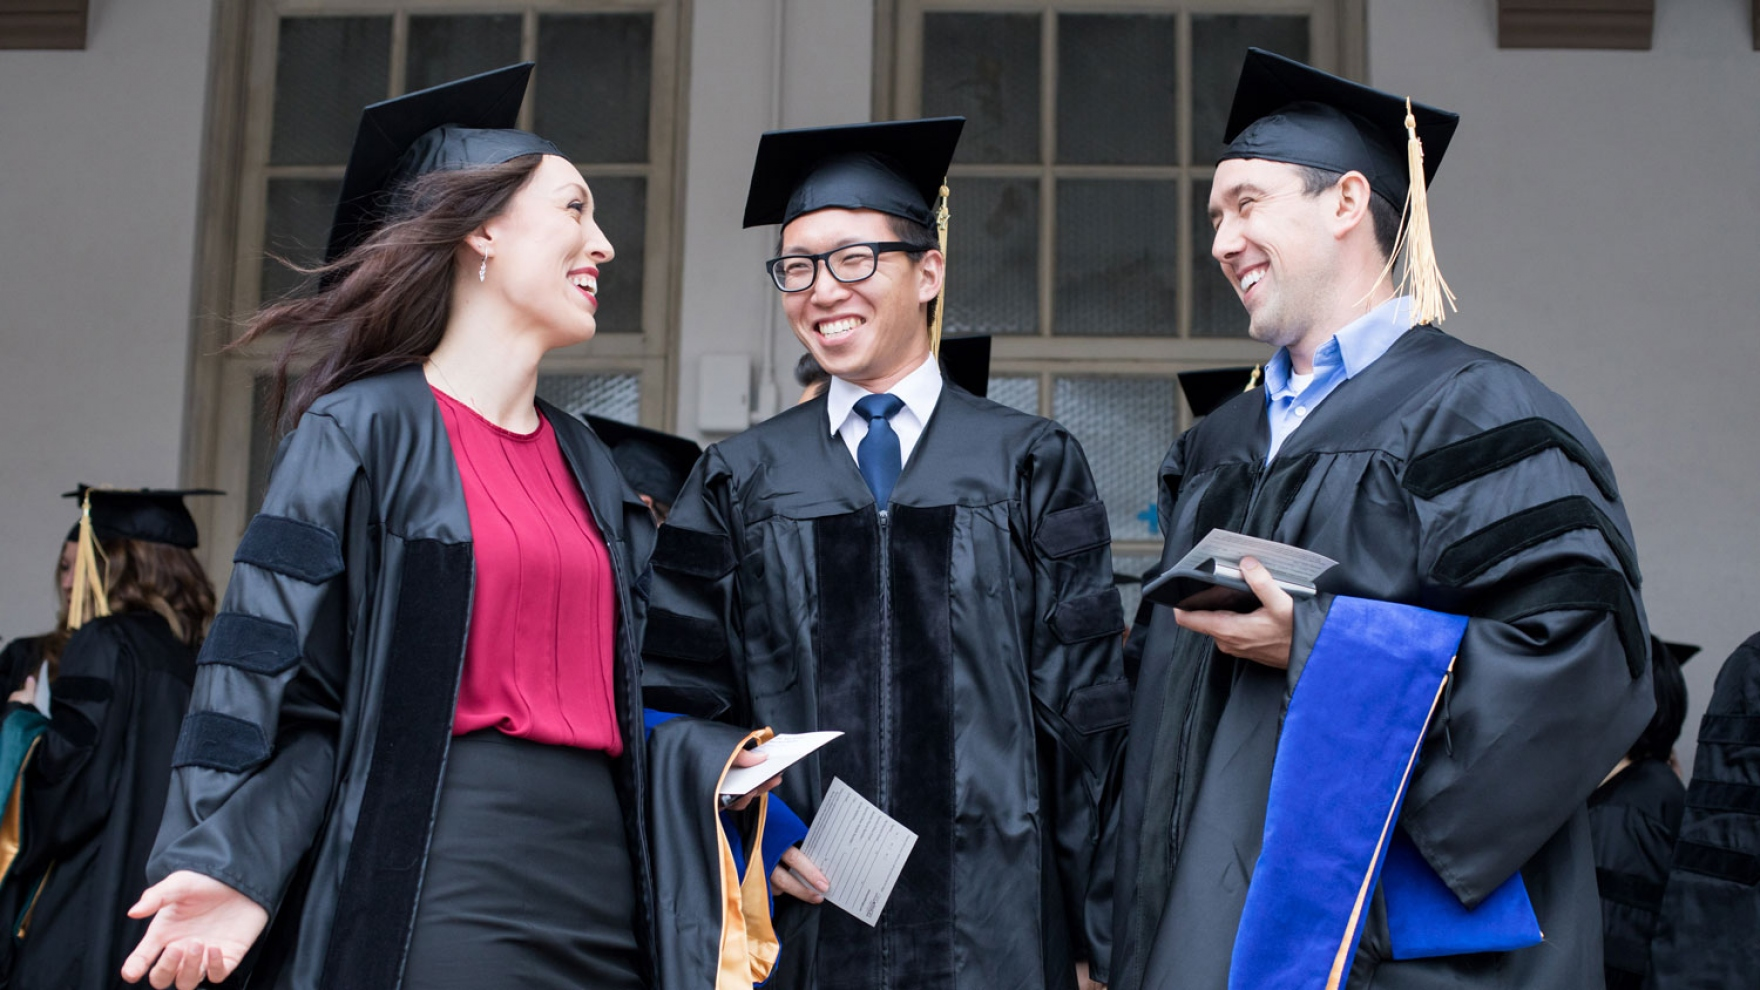 3 UCSF graduates talking in cap and gown